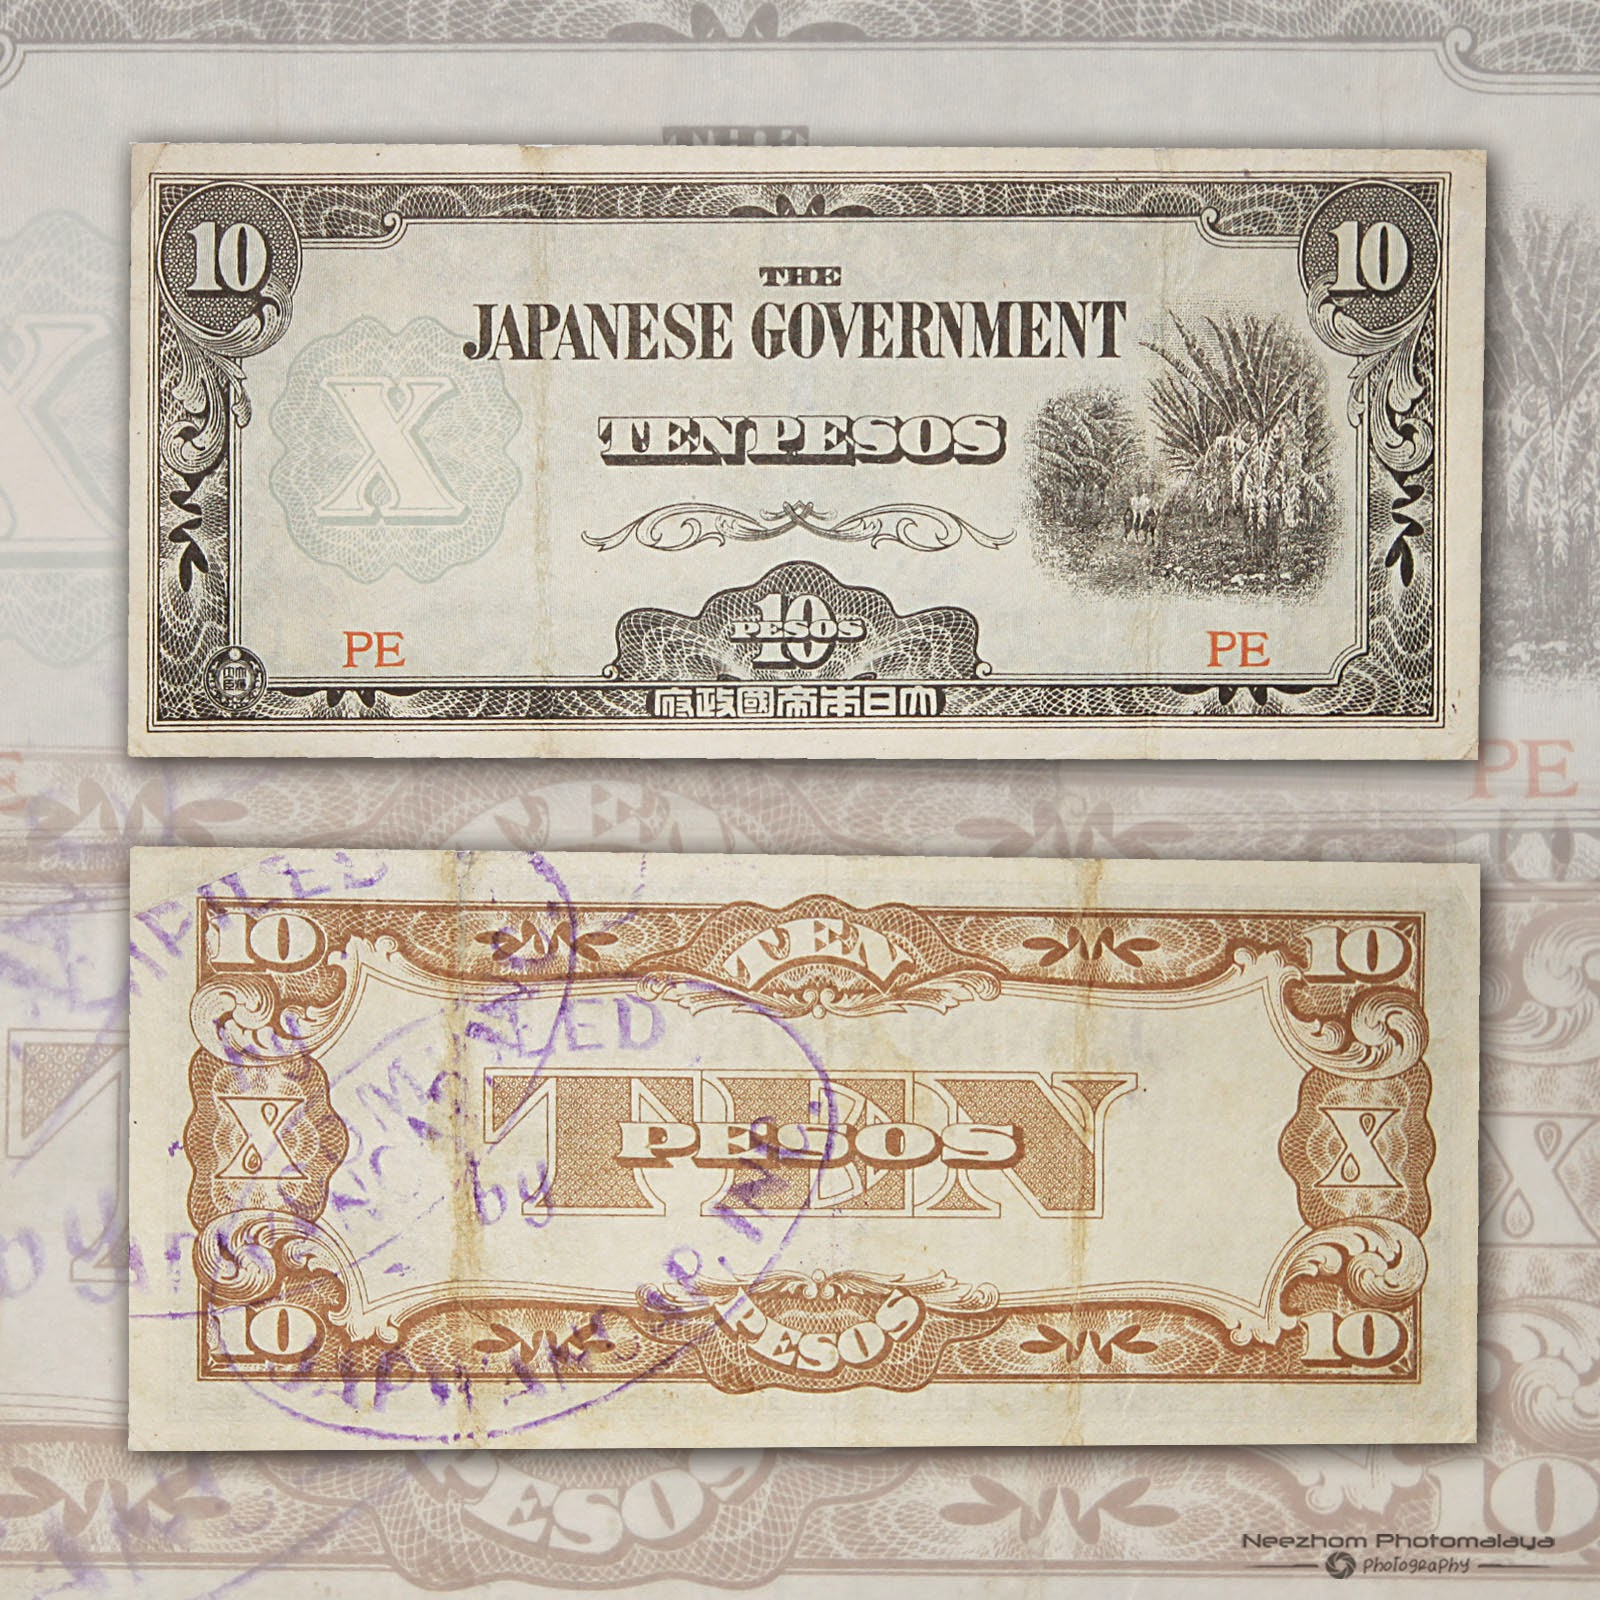 10 Pesos Philippine 1942 Japanese Occupation